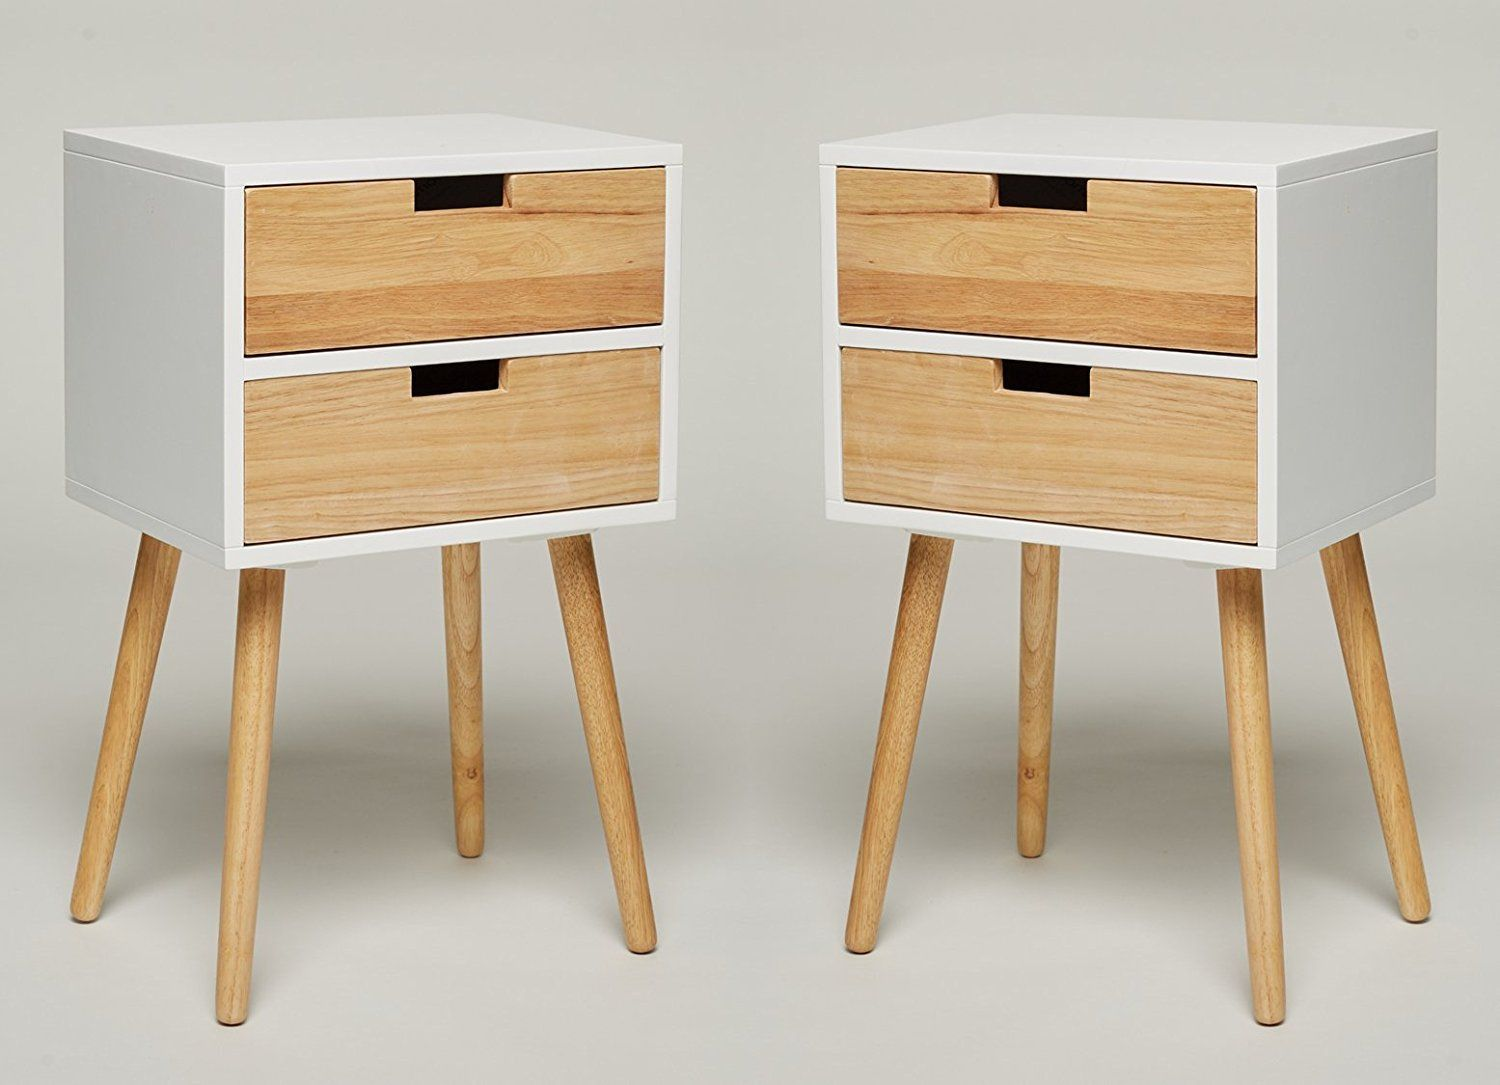 Set Of 2 Night Stand With 2 Drawers White Wood Telephone Table Console Table Side Table Bedside Table Wood Bedside Table Bedside Table Kitchen Table Settings